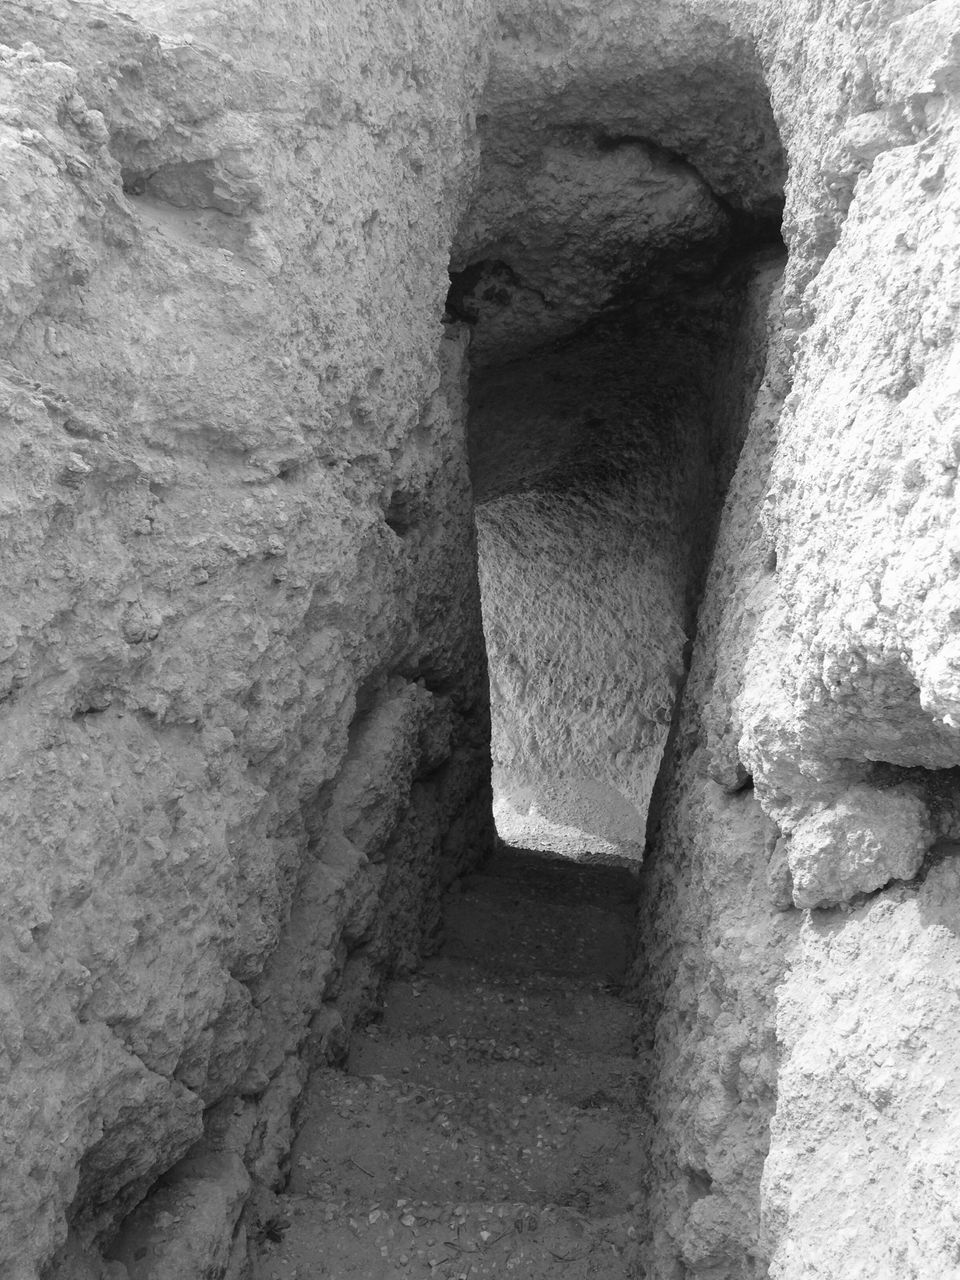 rock - object, day, architecture, built structure, textured, no people, outdoors, nature, close-up, ancient civilization